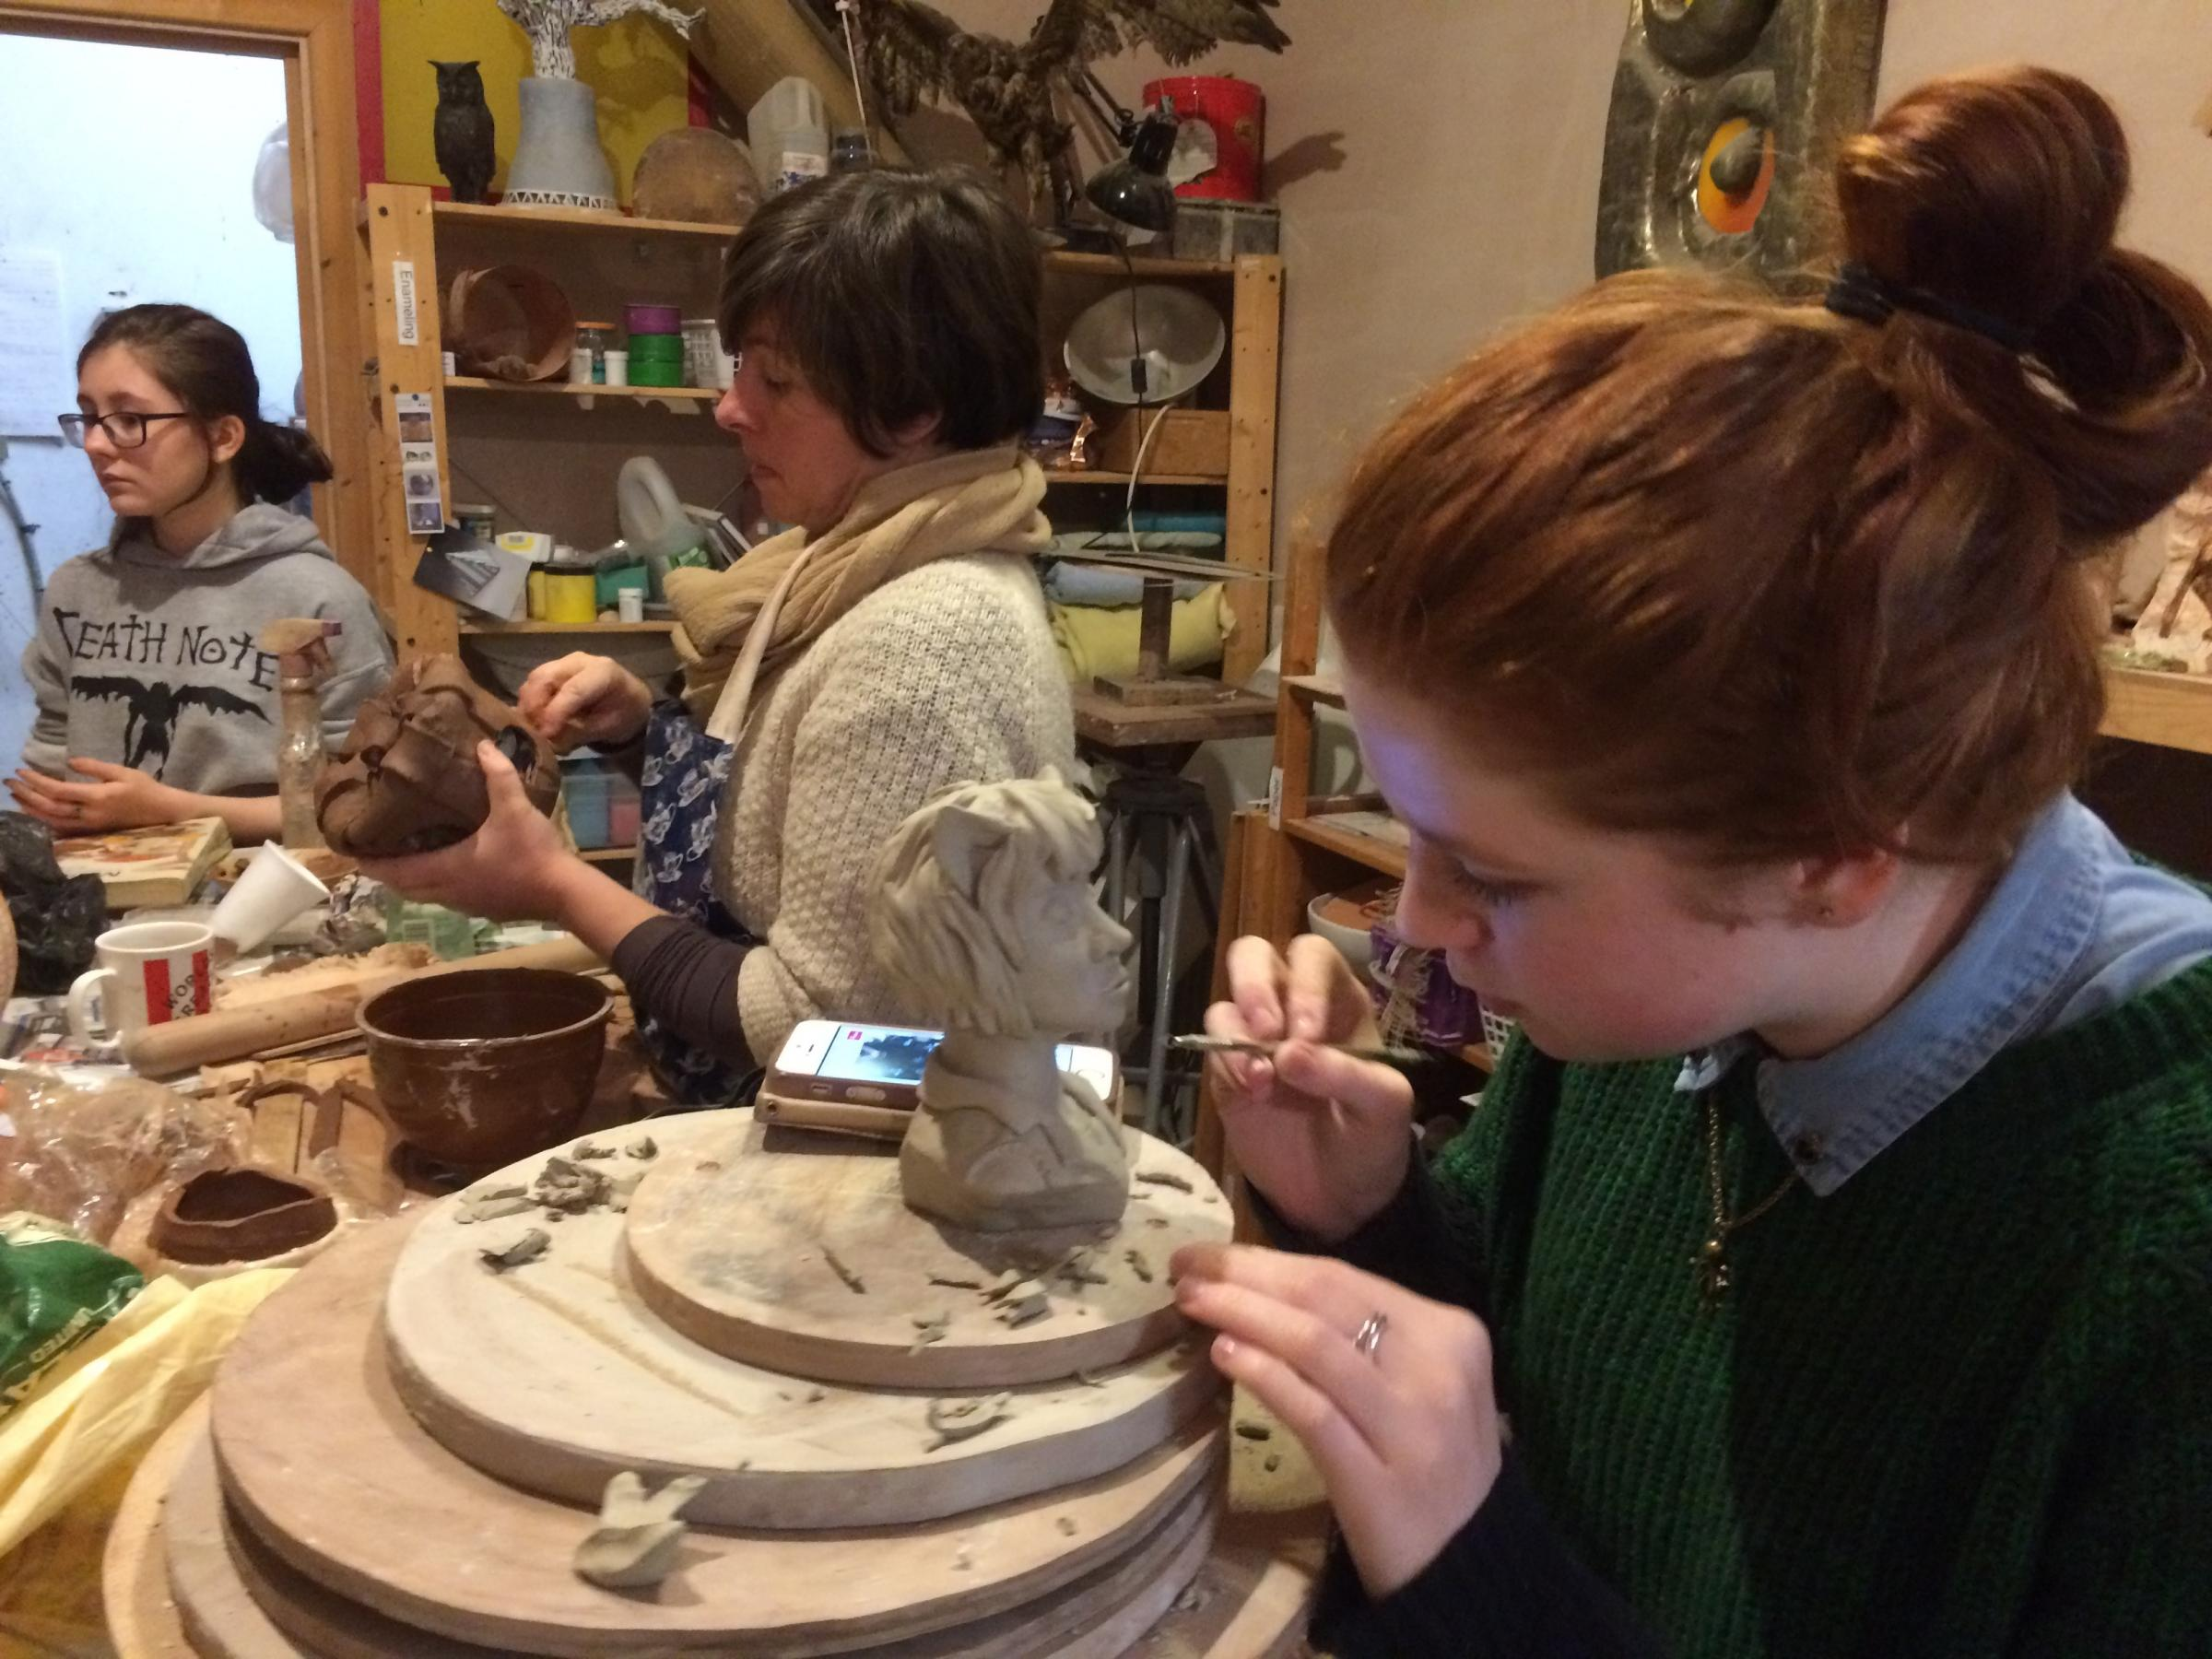 Pottery classes are a hit at the Mid Wales Arts Centre, Caersws.